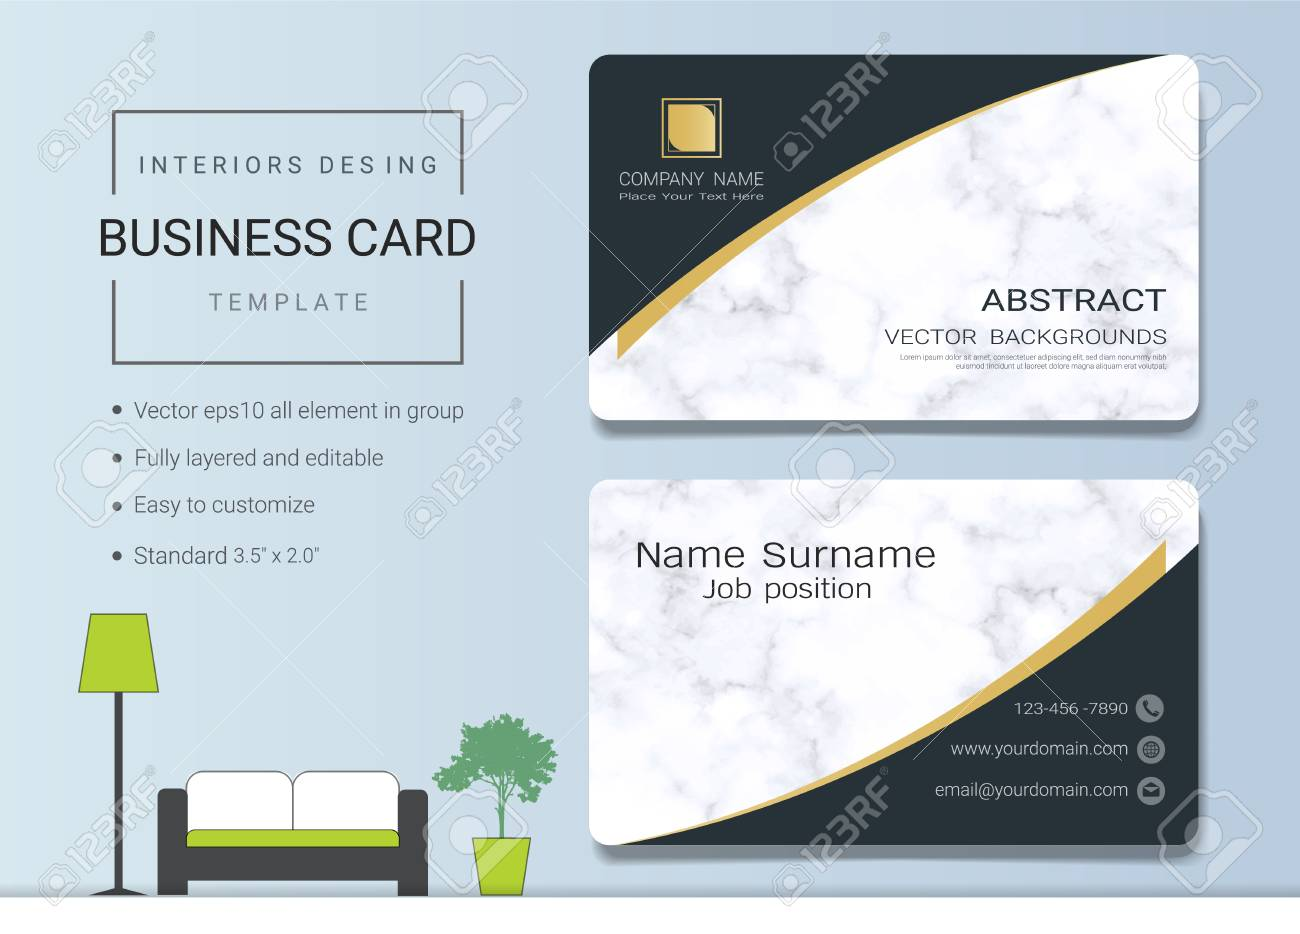 Business Card Or Name Card Template For Interior Designer Modern Royalty Free Cliparts Vectors And Stock Illustration Image 96103075